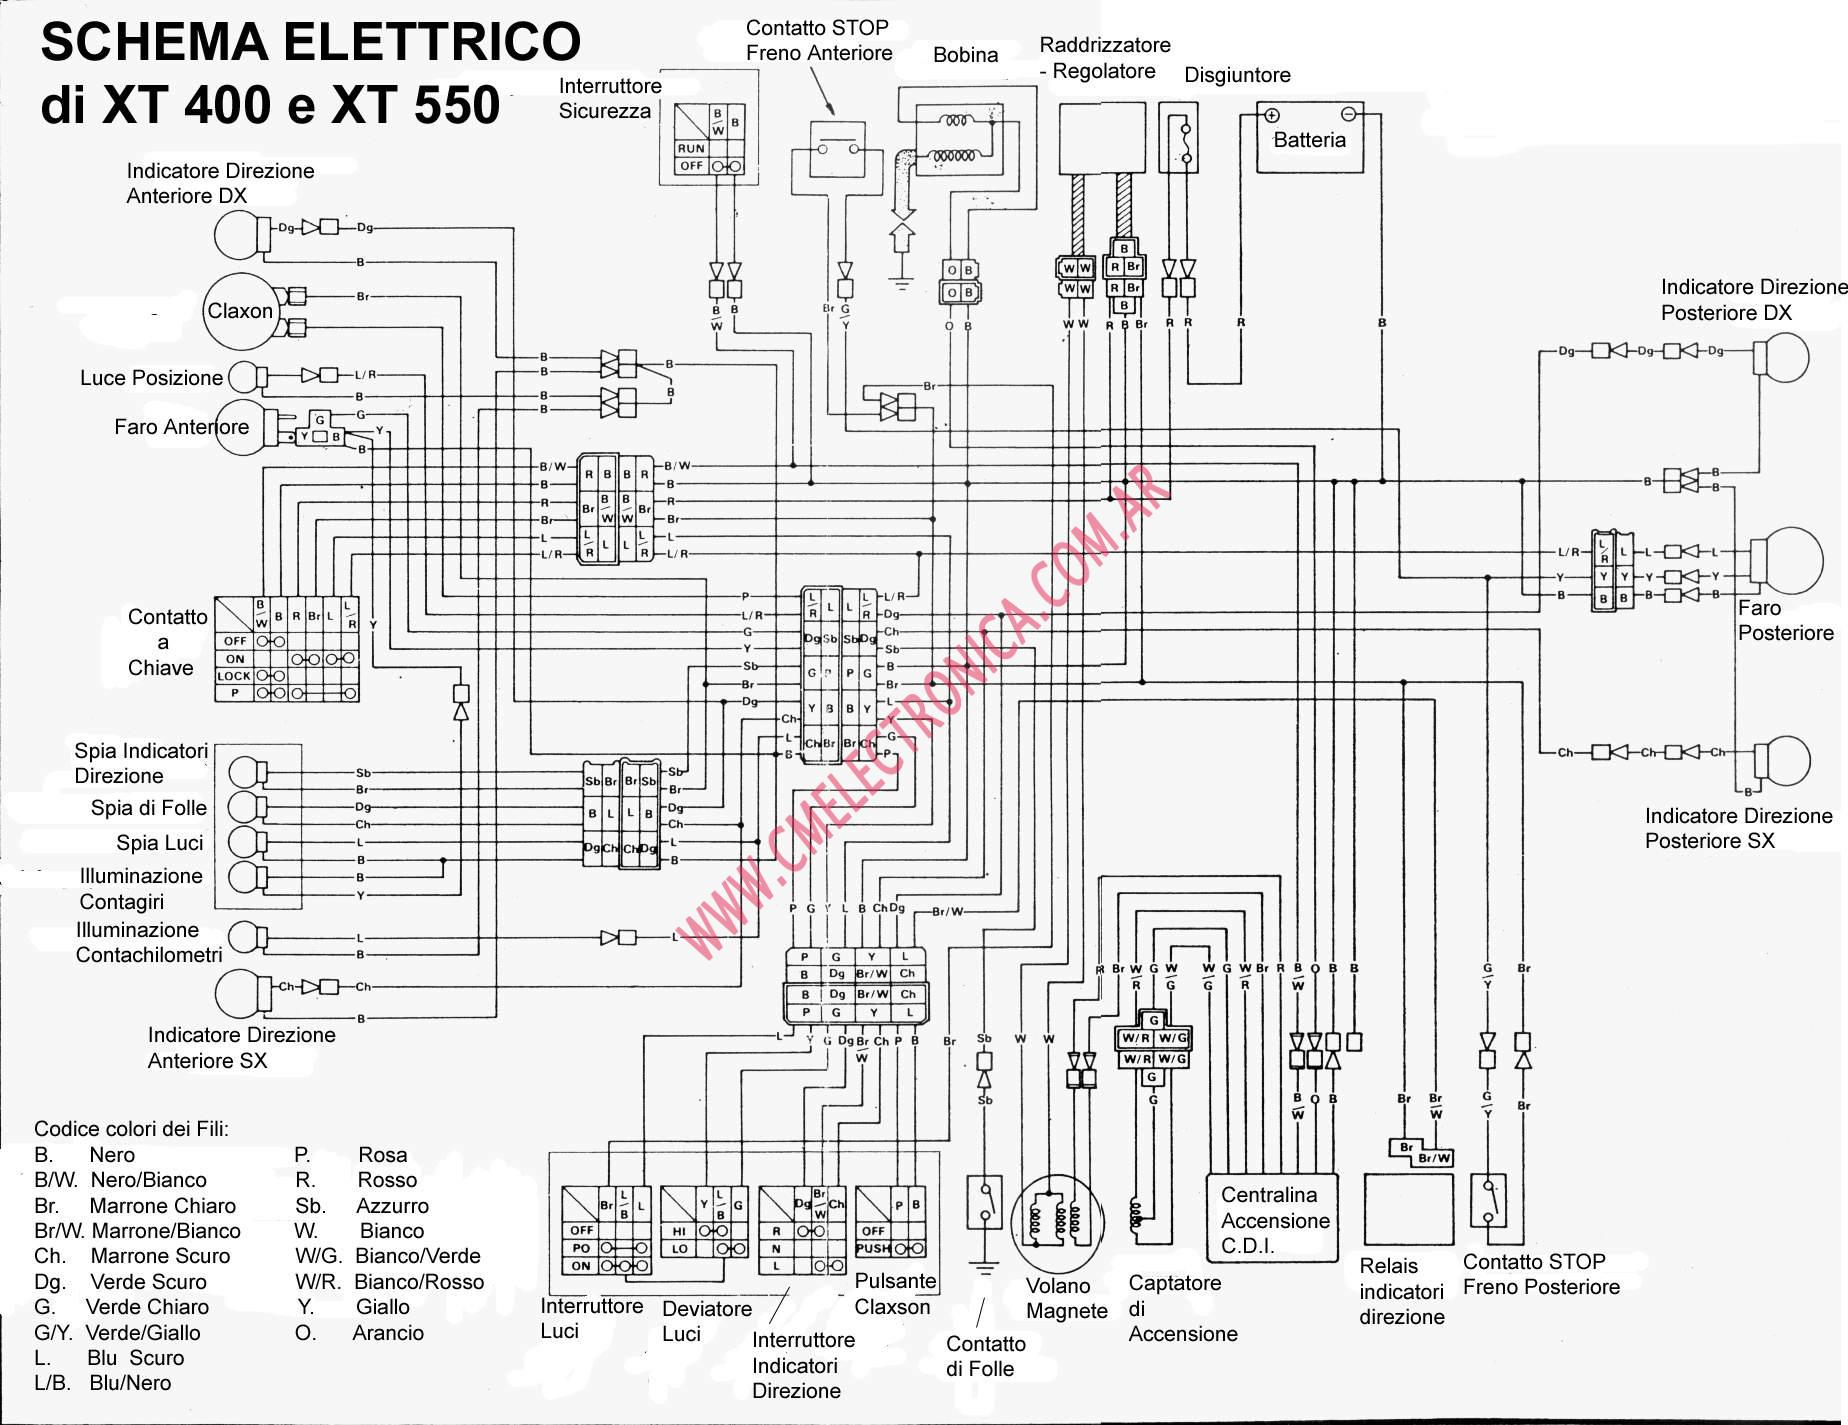 93 95 yamaha kodiak 400 wiring diagram